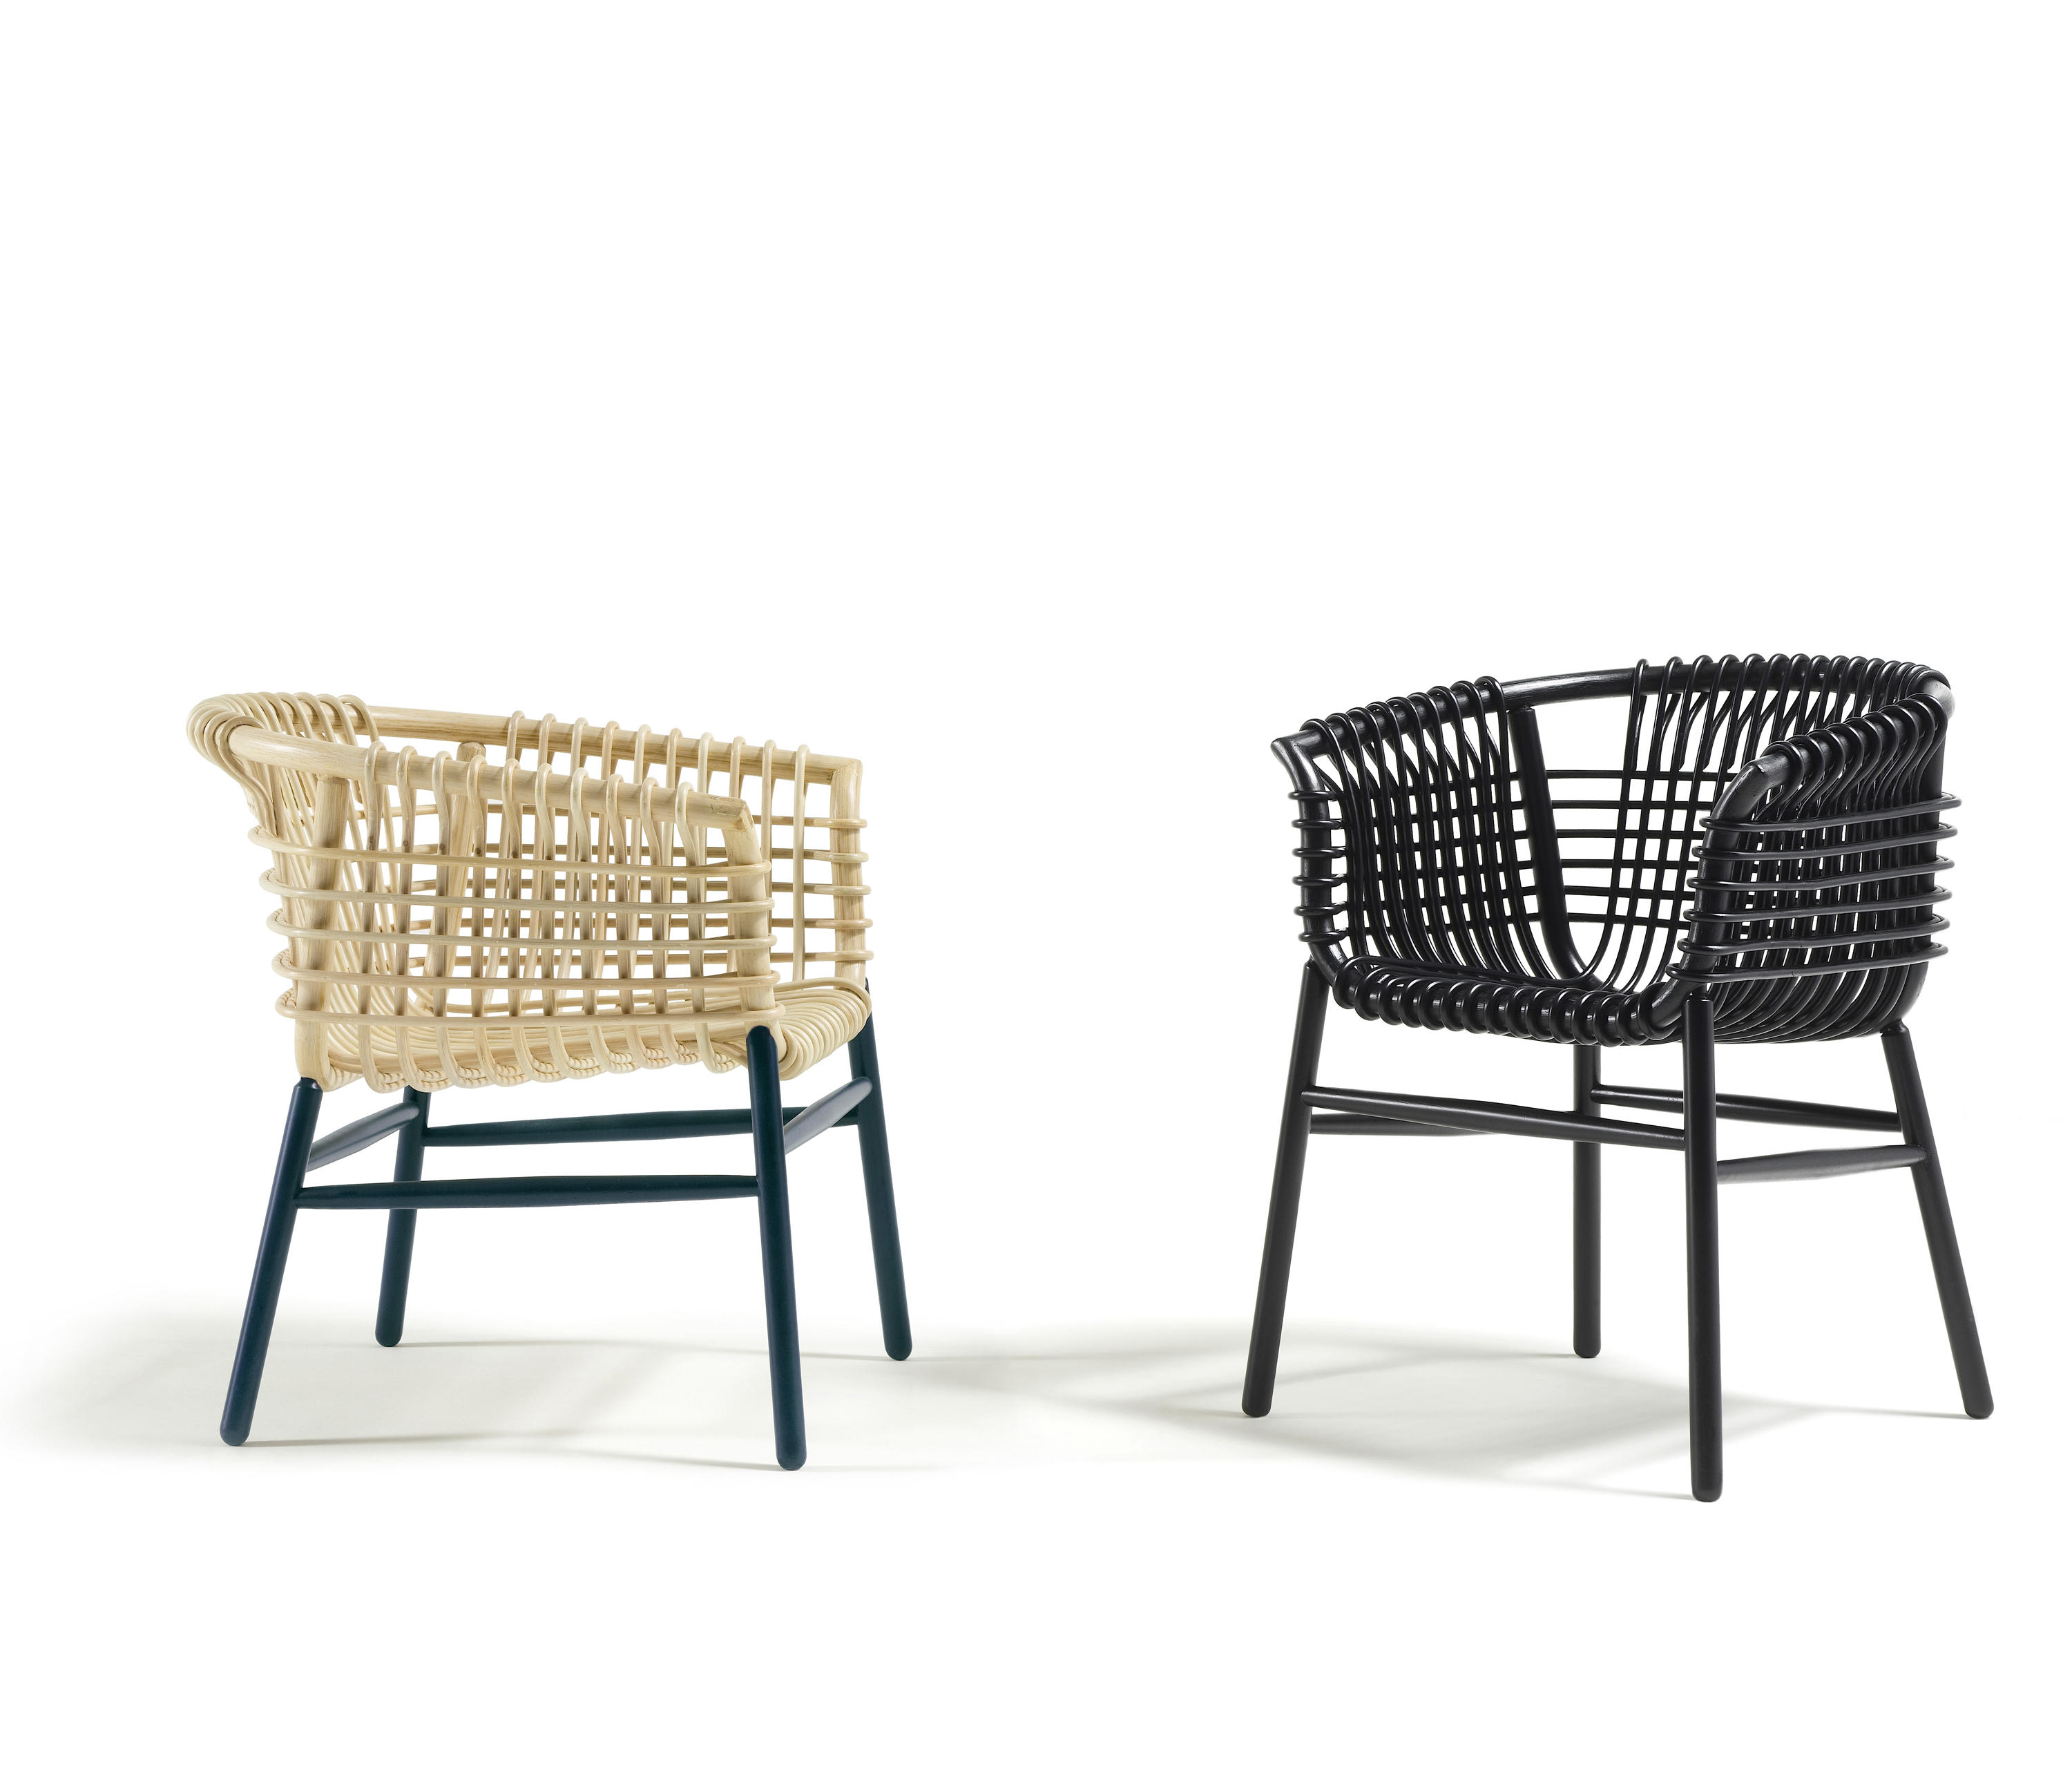 lukis  chairs from cappellini  architonic - lukis by cappellini lukis by cappellini